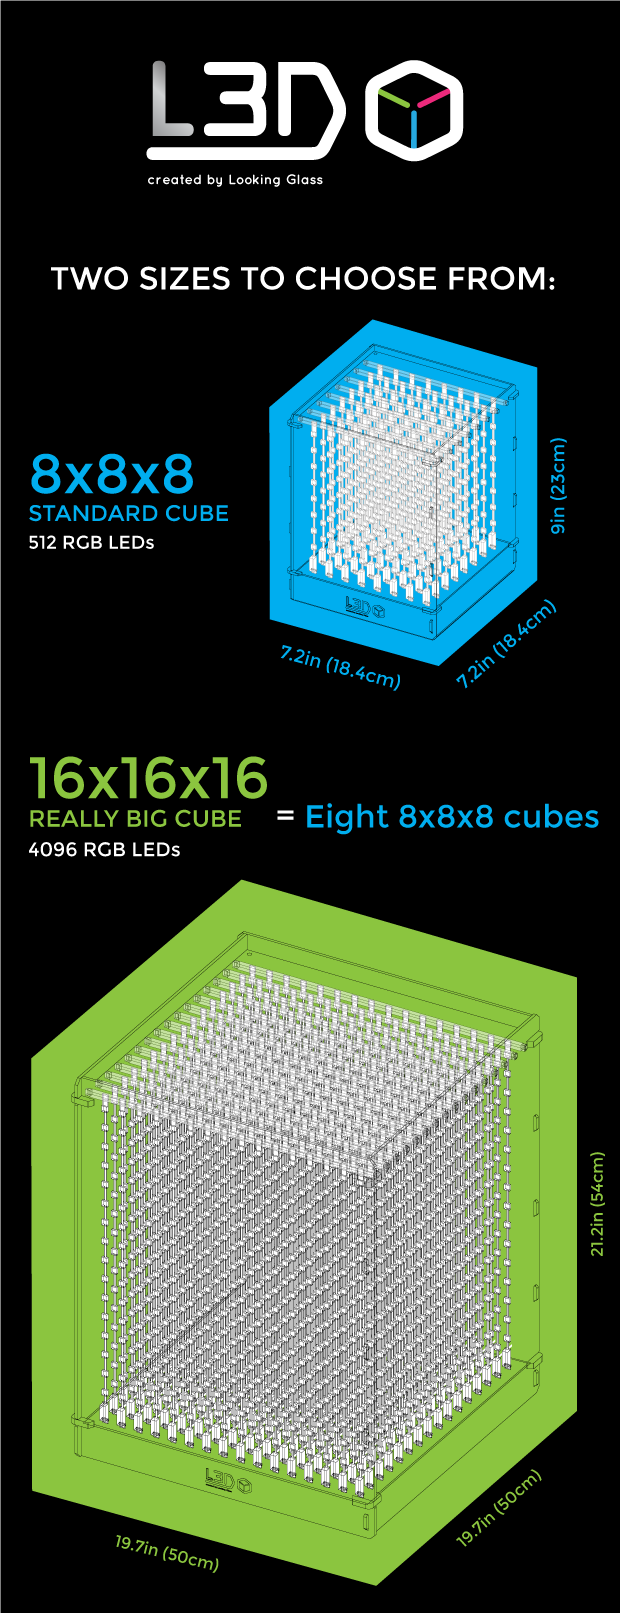 L3d Cube The 3d Led From Future By Looking Glass Kickstarter Circuit Diagram Of 8x8x8 Rgb Five Ways To Use Your